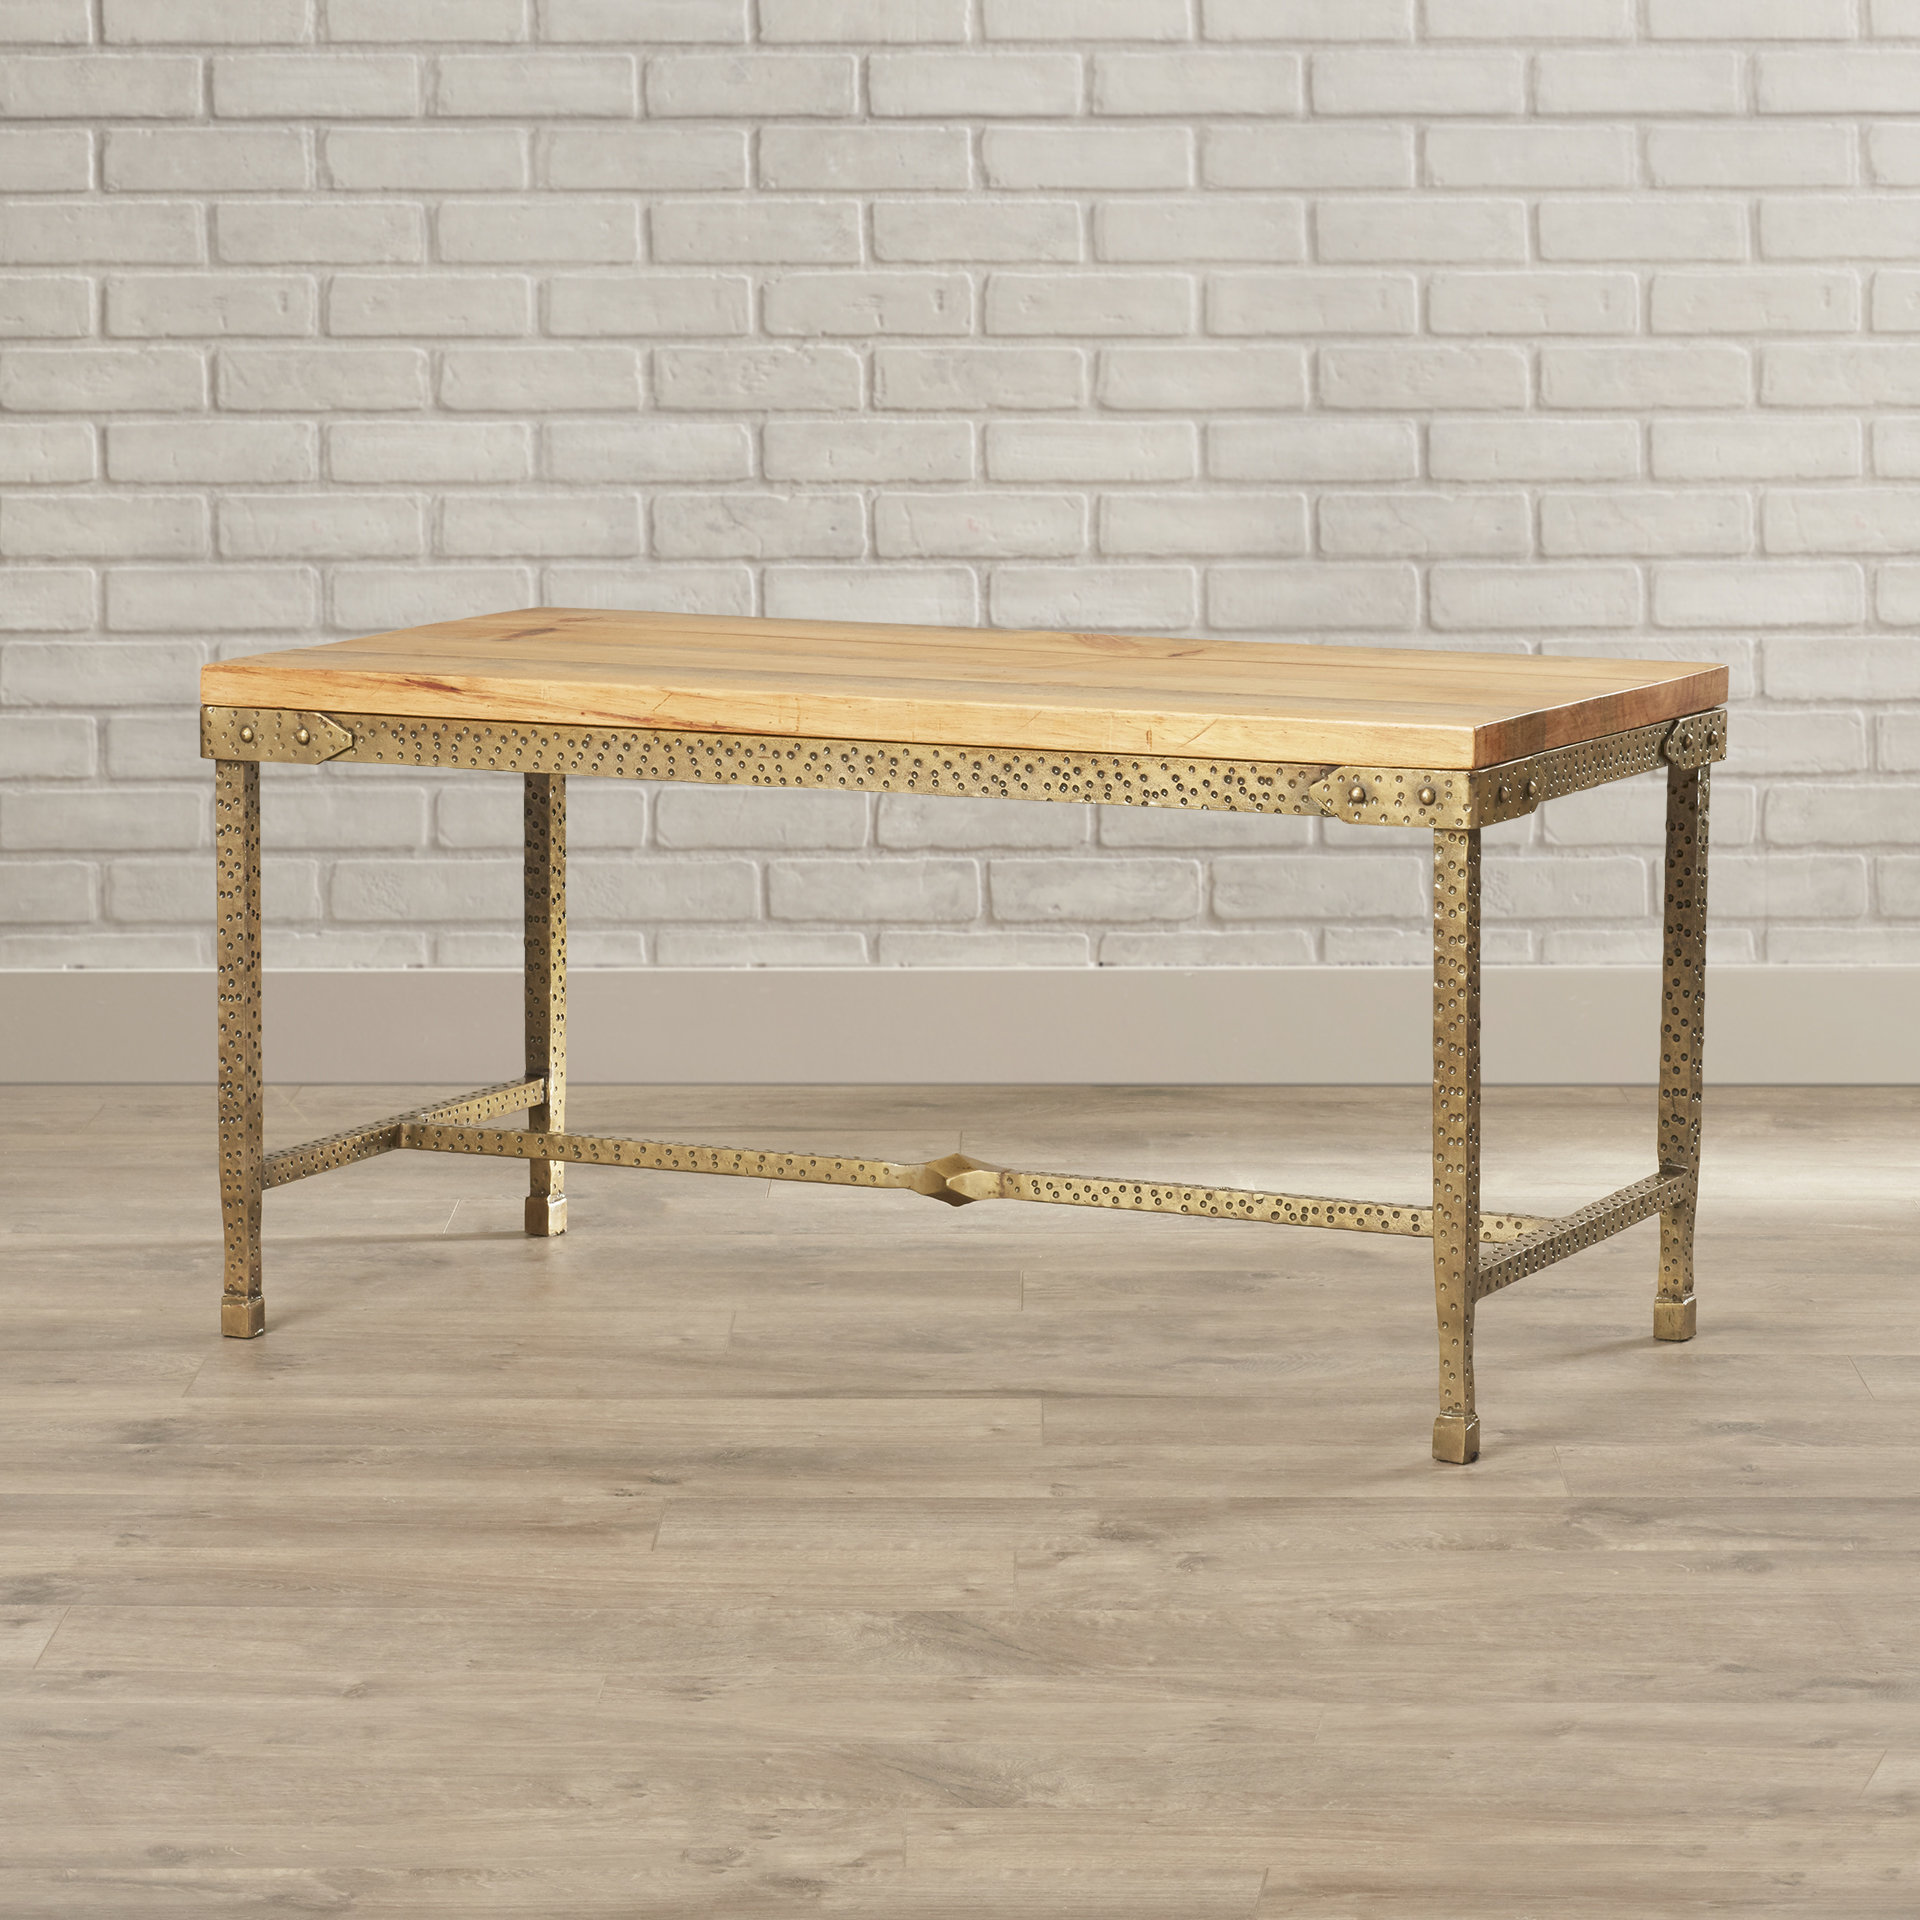 brushed gold coffee table mellie accent with marble top small dresser target reclaimed wood bedside white cabinets ashley bedroom furniture kids drum throne cherry dining set